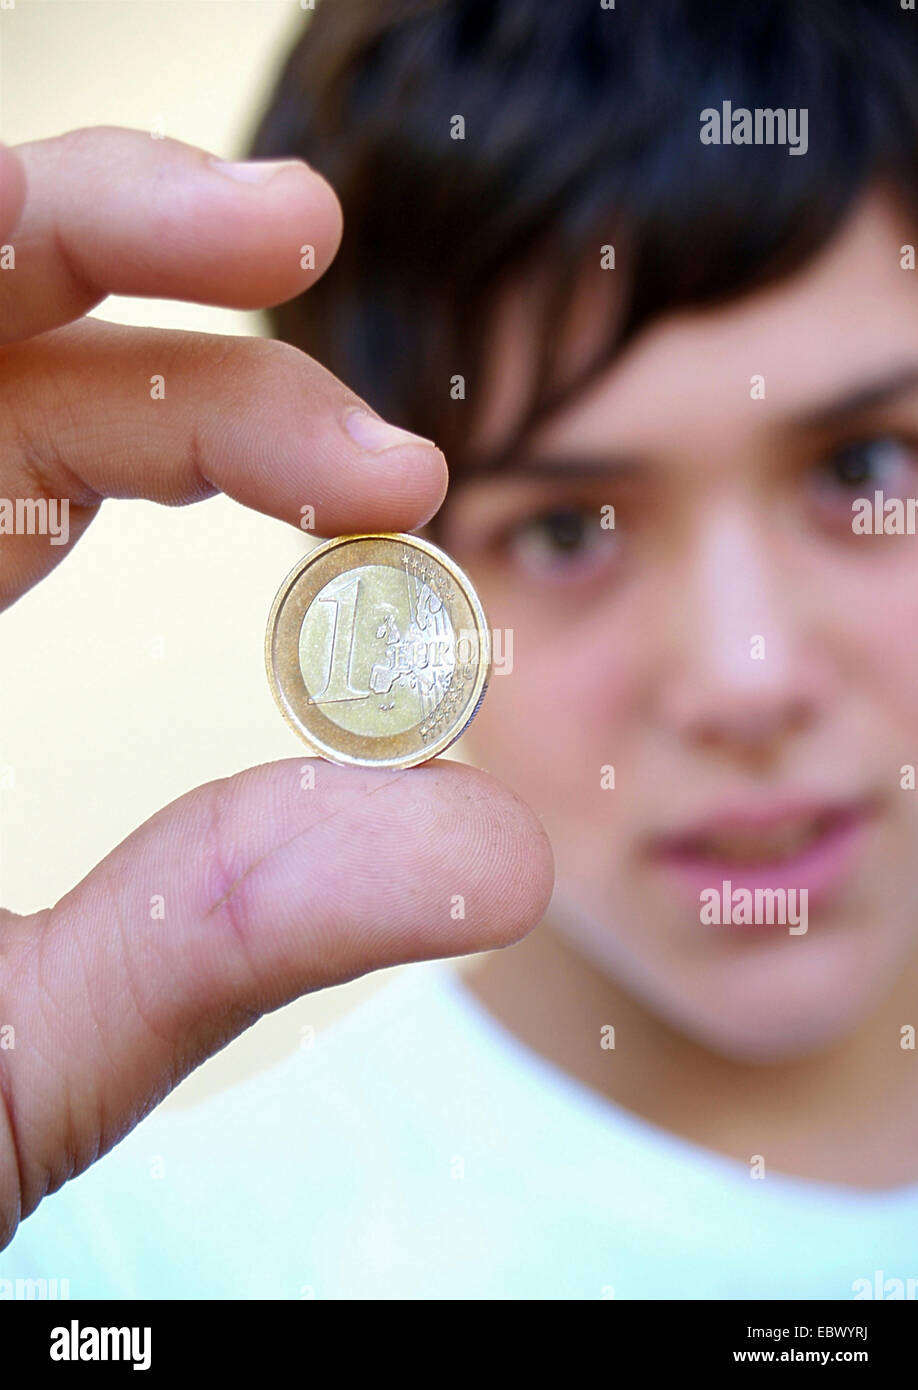 young man holding a 1 Euro coin between the fingers - Stock Image